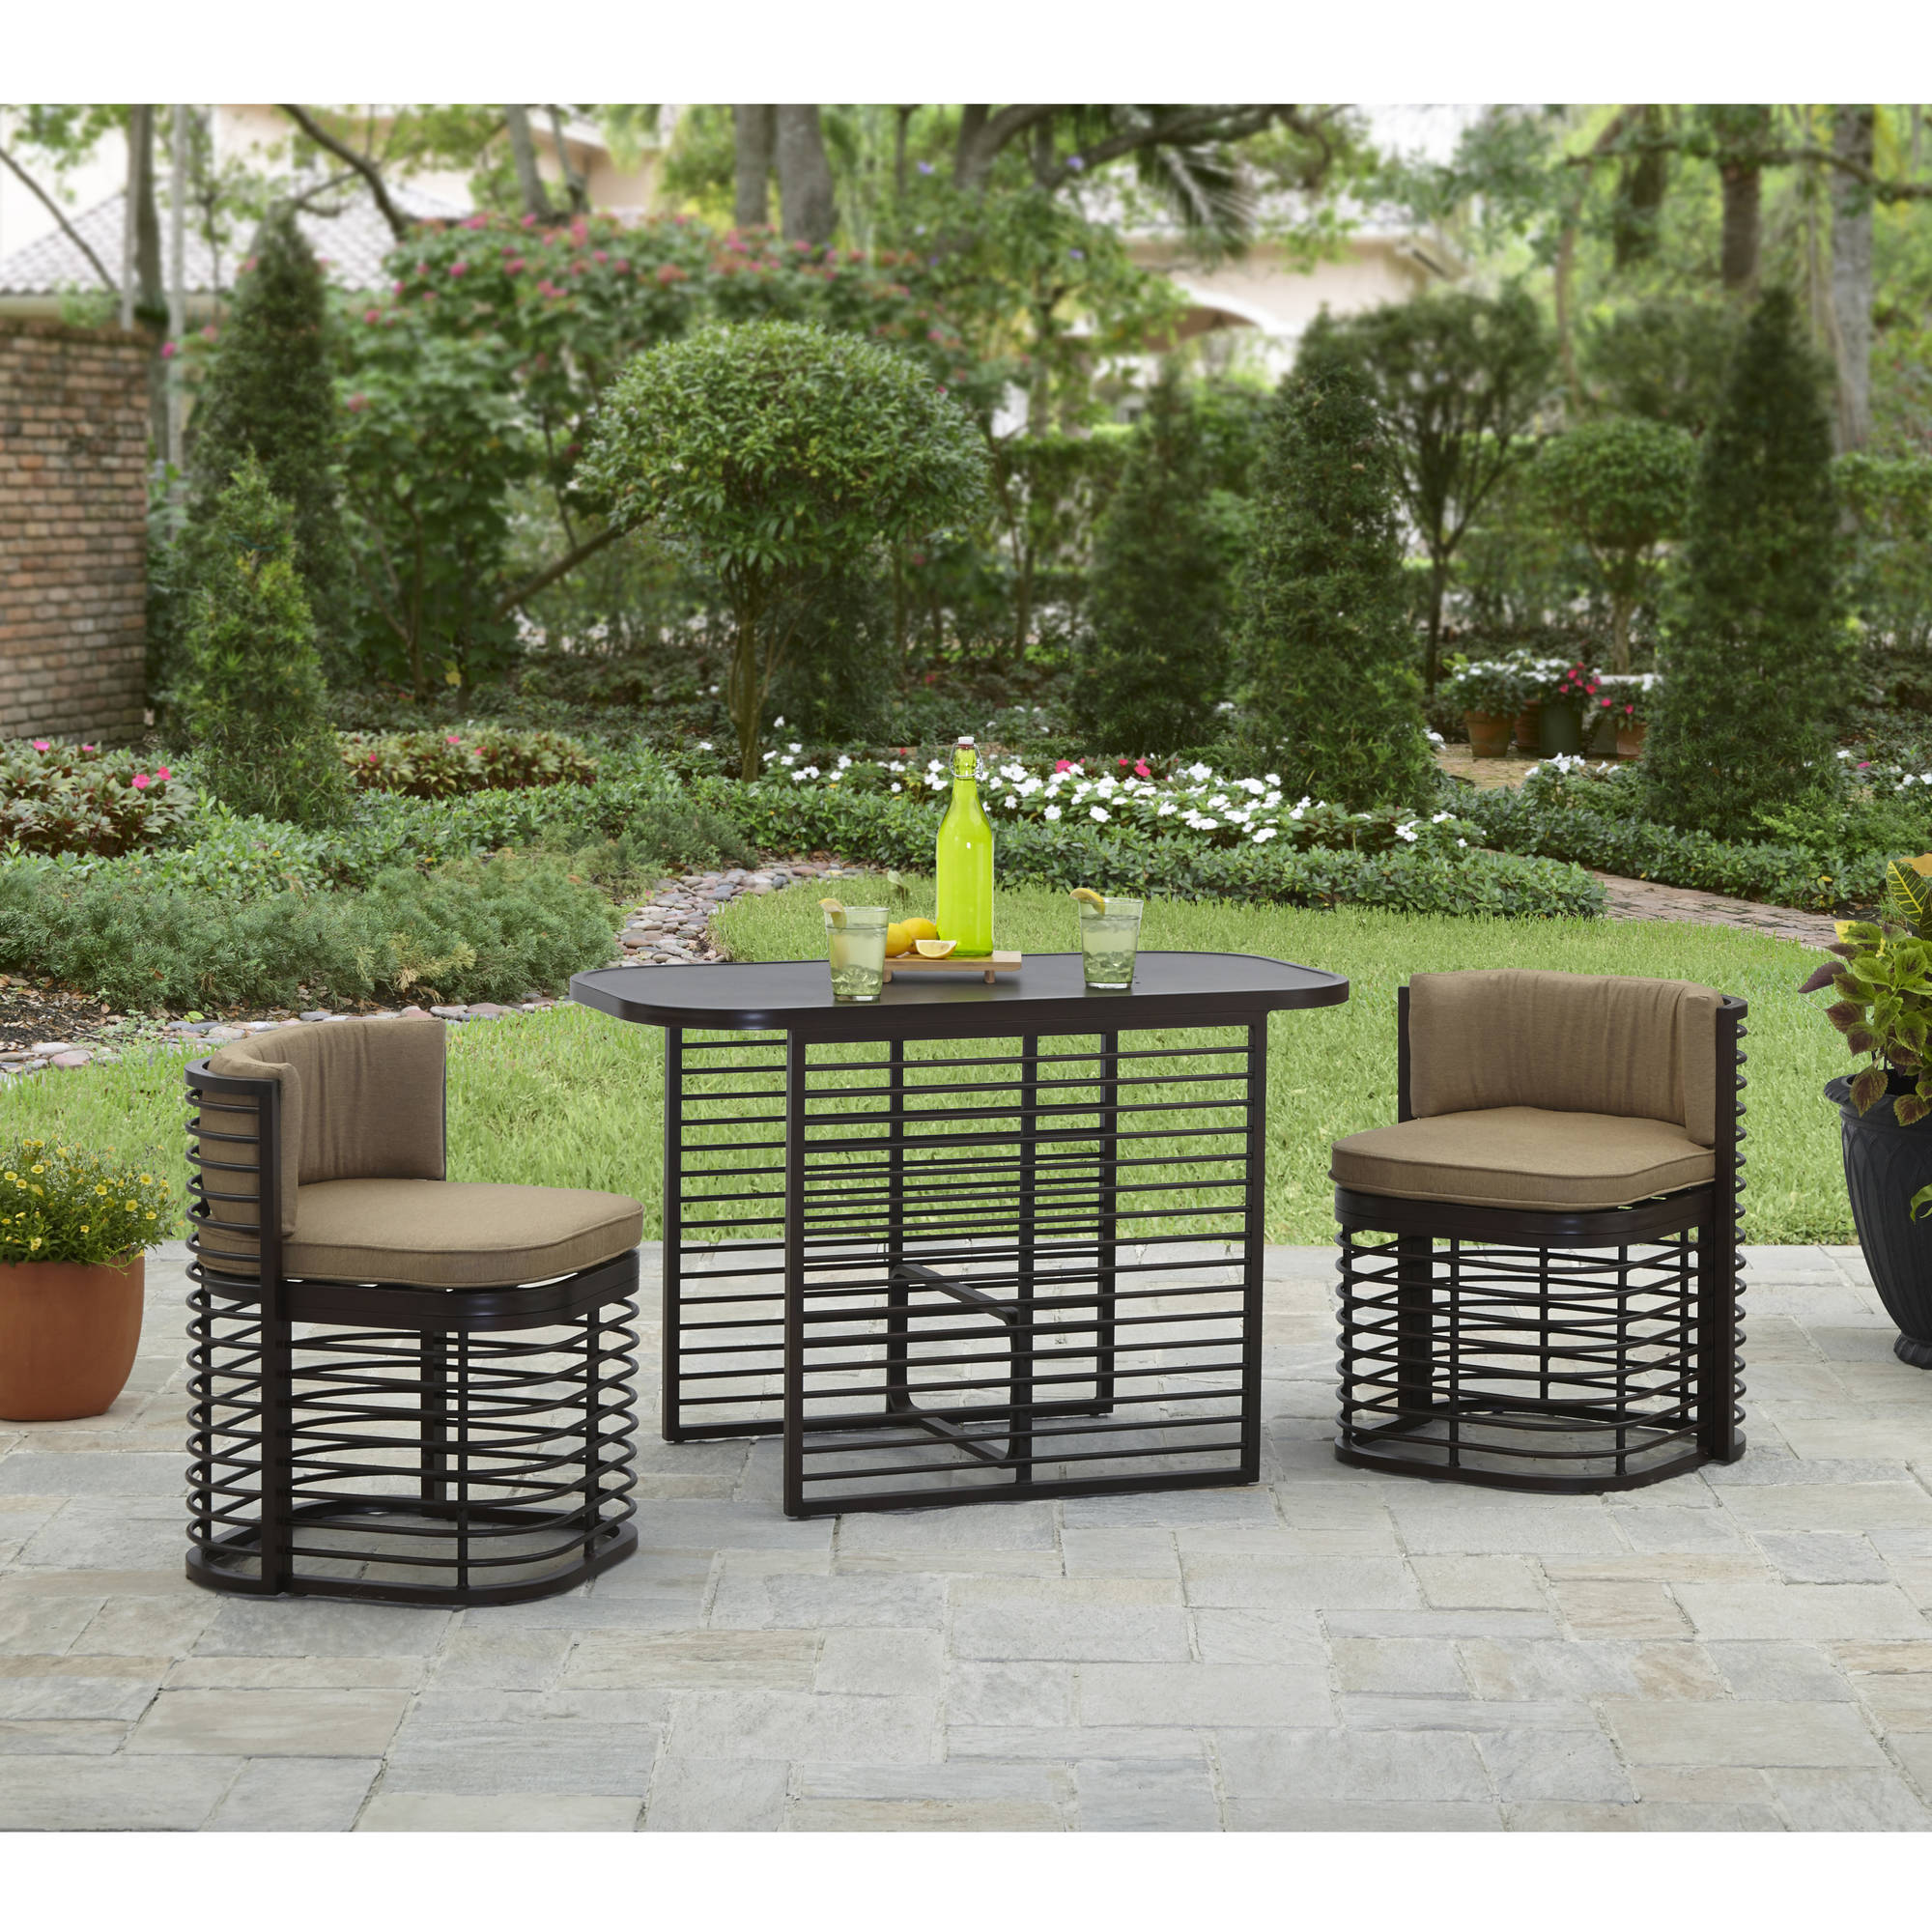 Better Homes and Gardens Murray Hill 3 Piece Outdoor Bistro Set by Hangzhou Jinshi Hardware Co., Ltd.